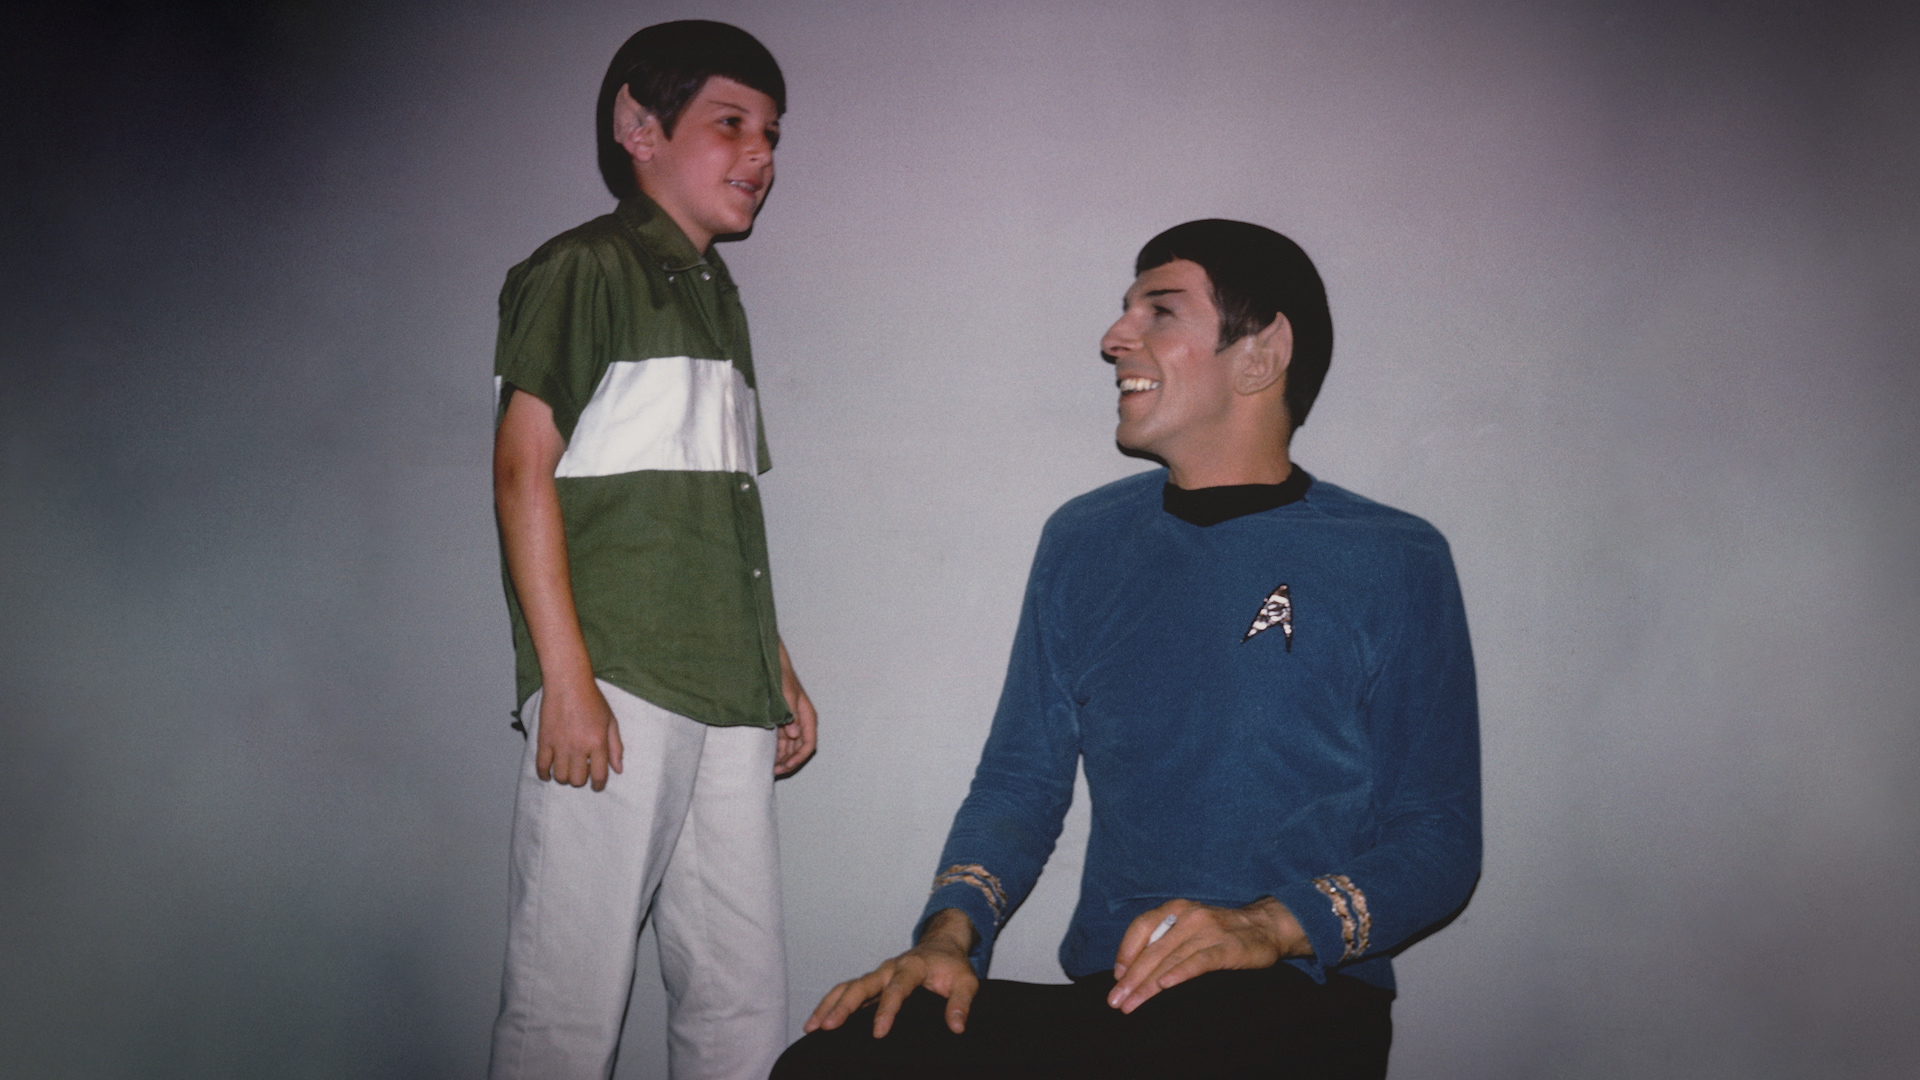 adam nimoy with leonard spock